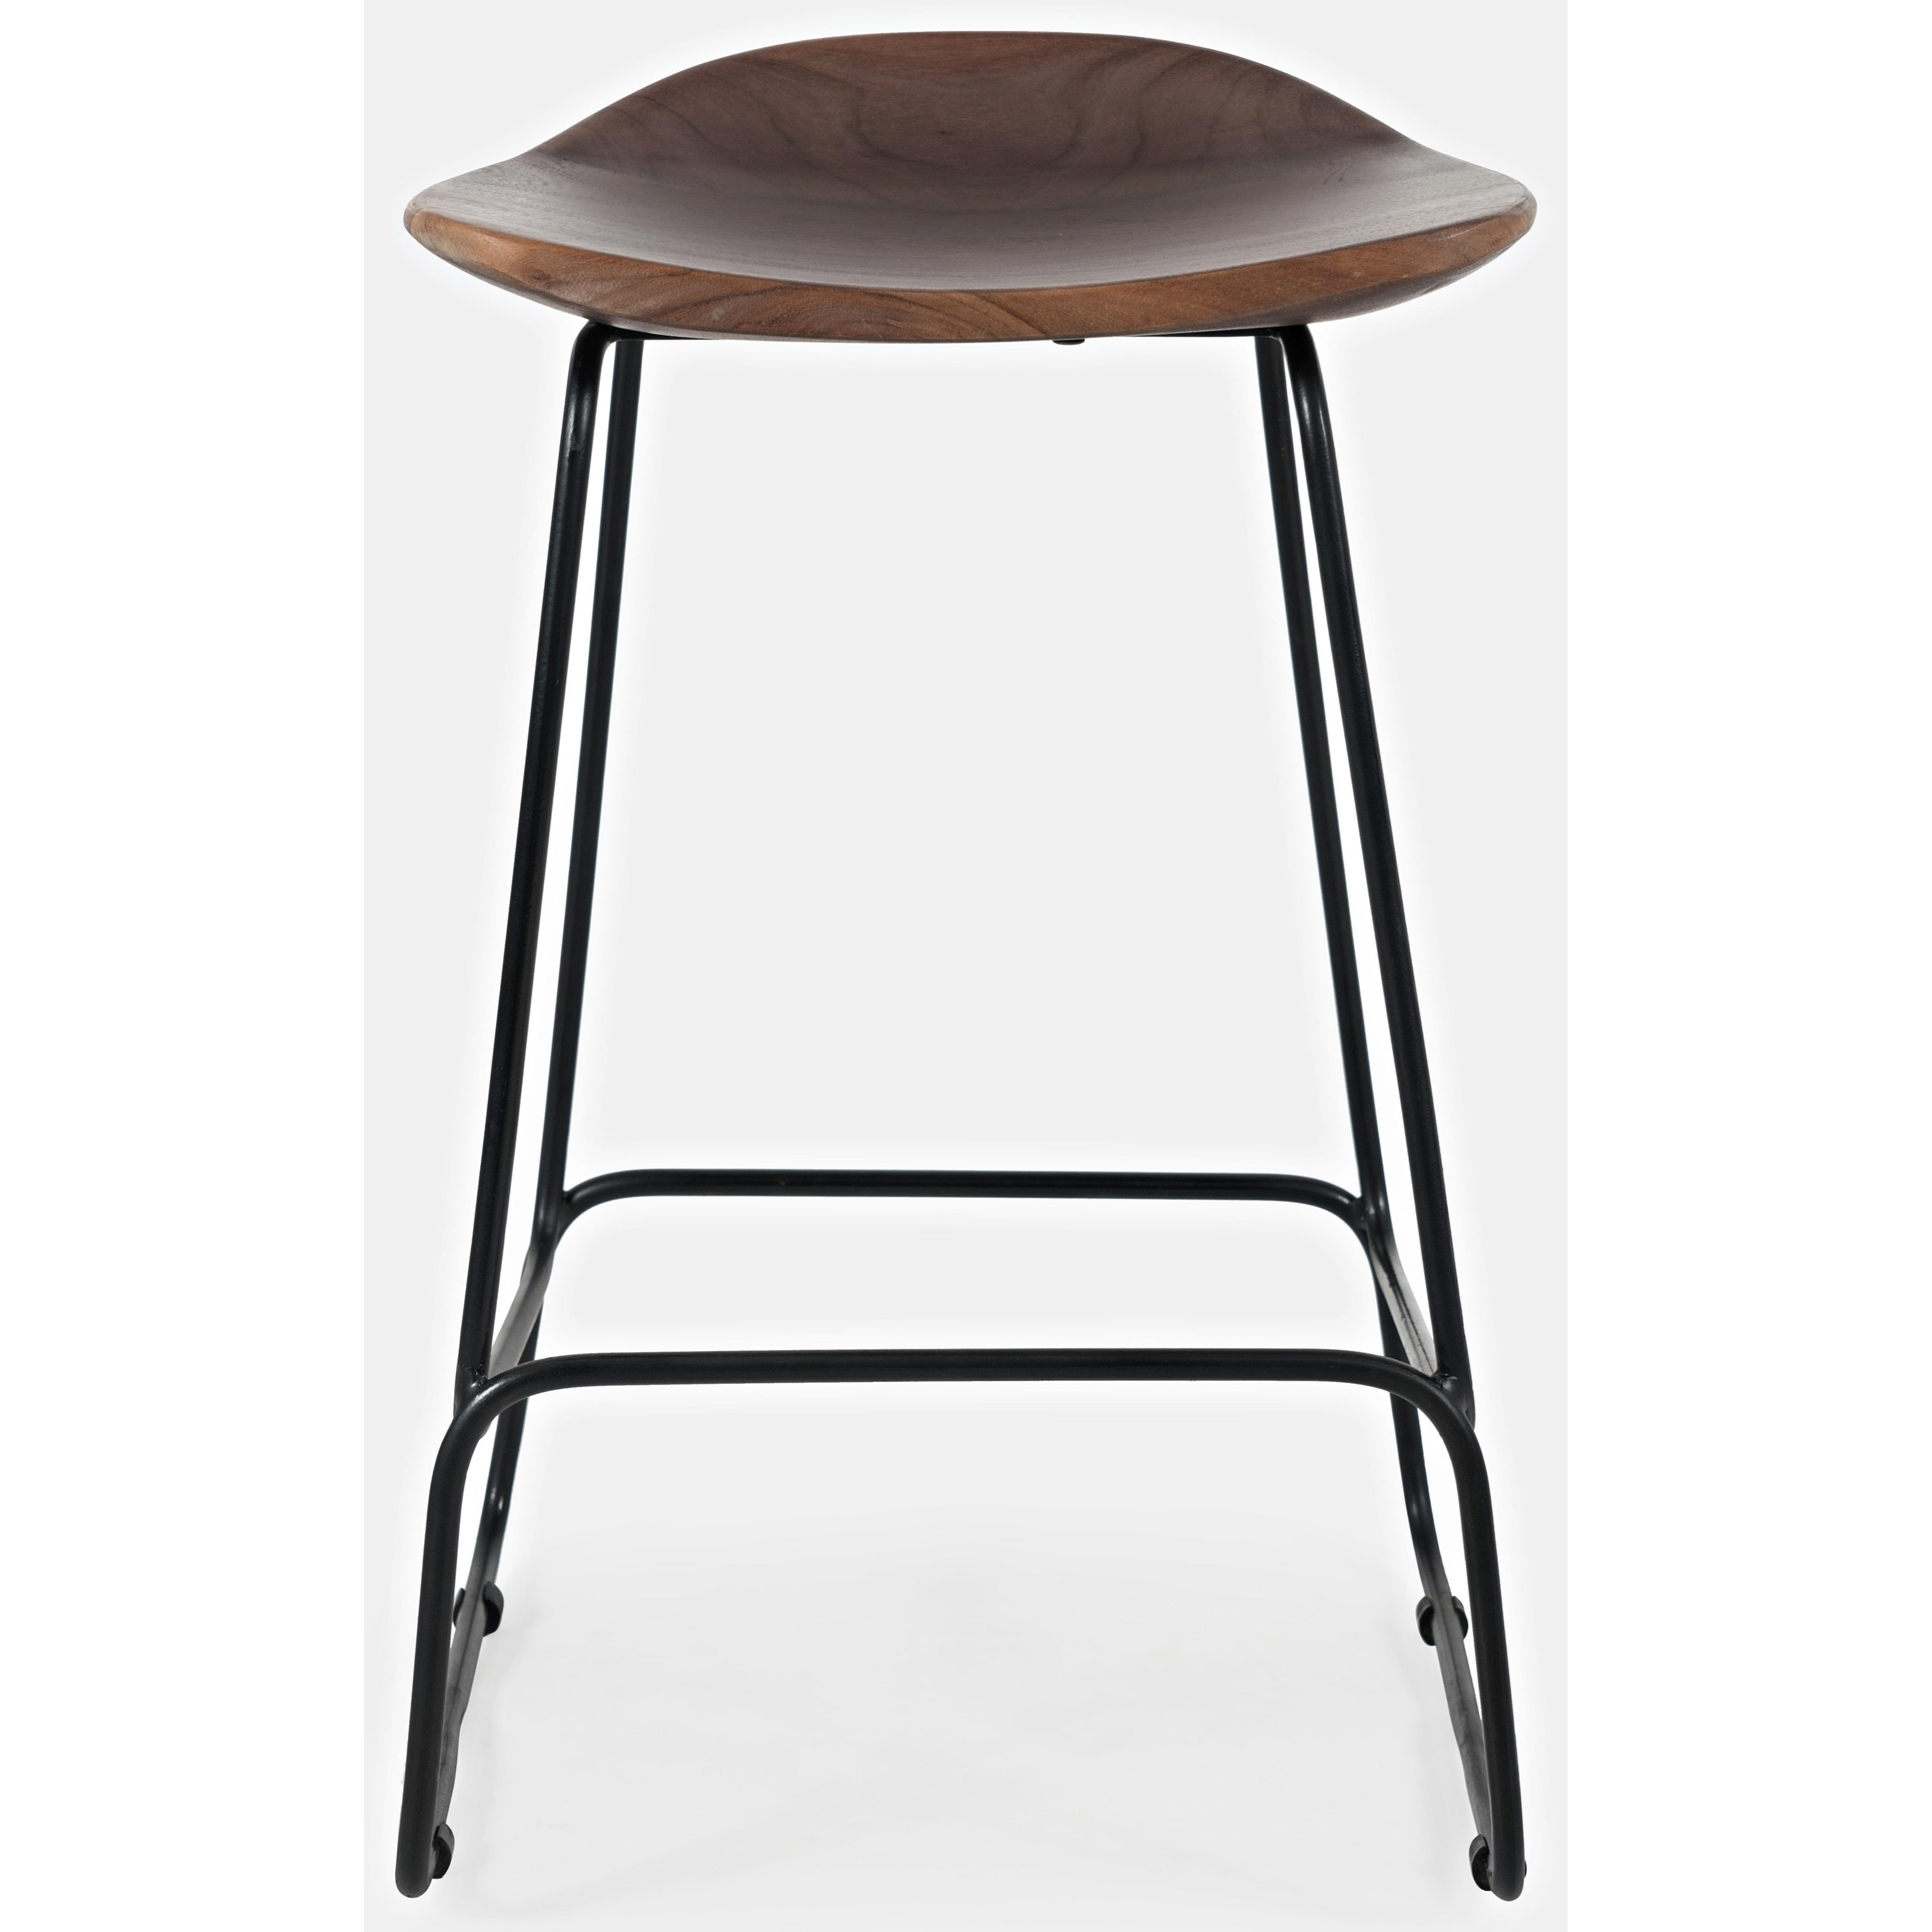 Live Edge live edge backless counter height bar stool at Walker's Furniture